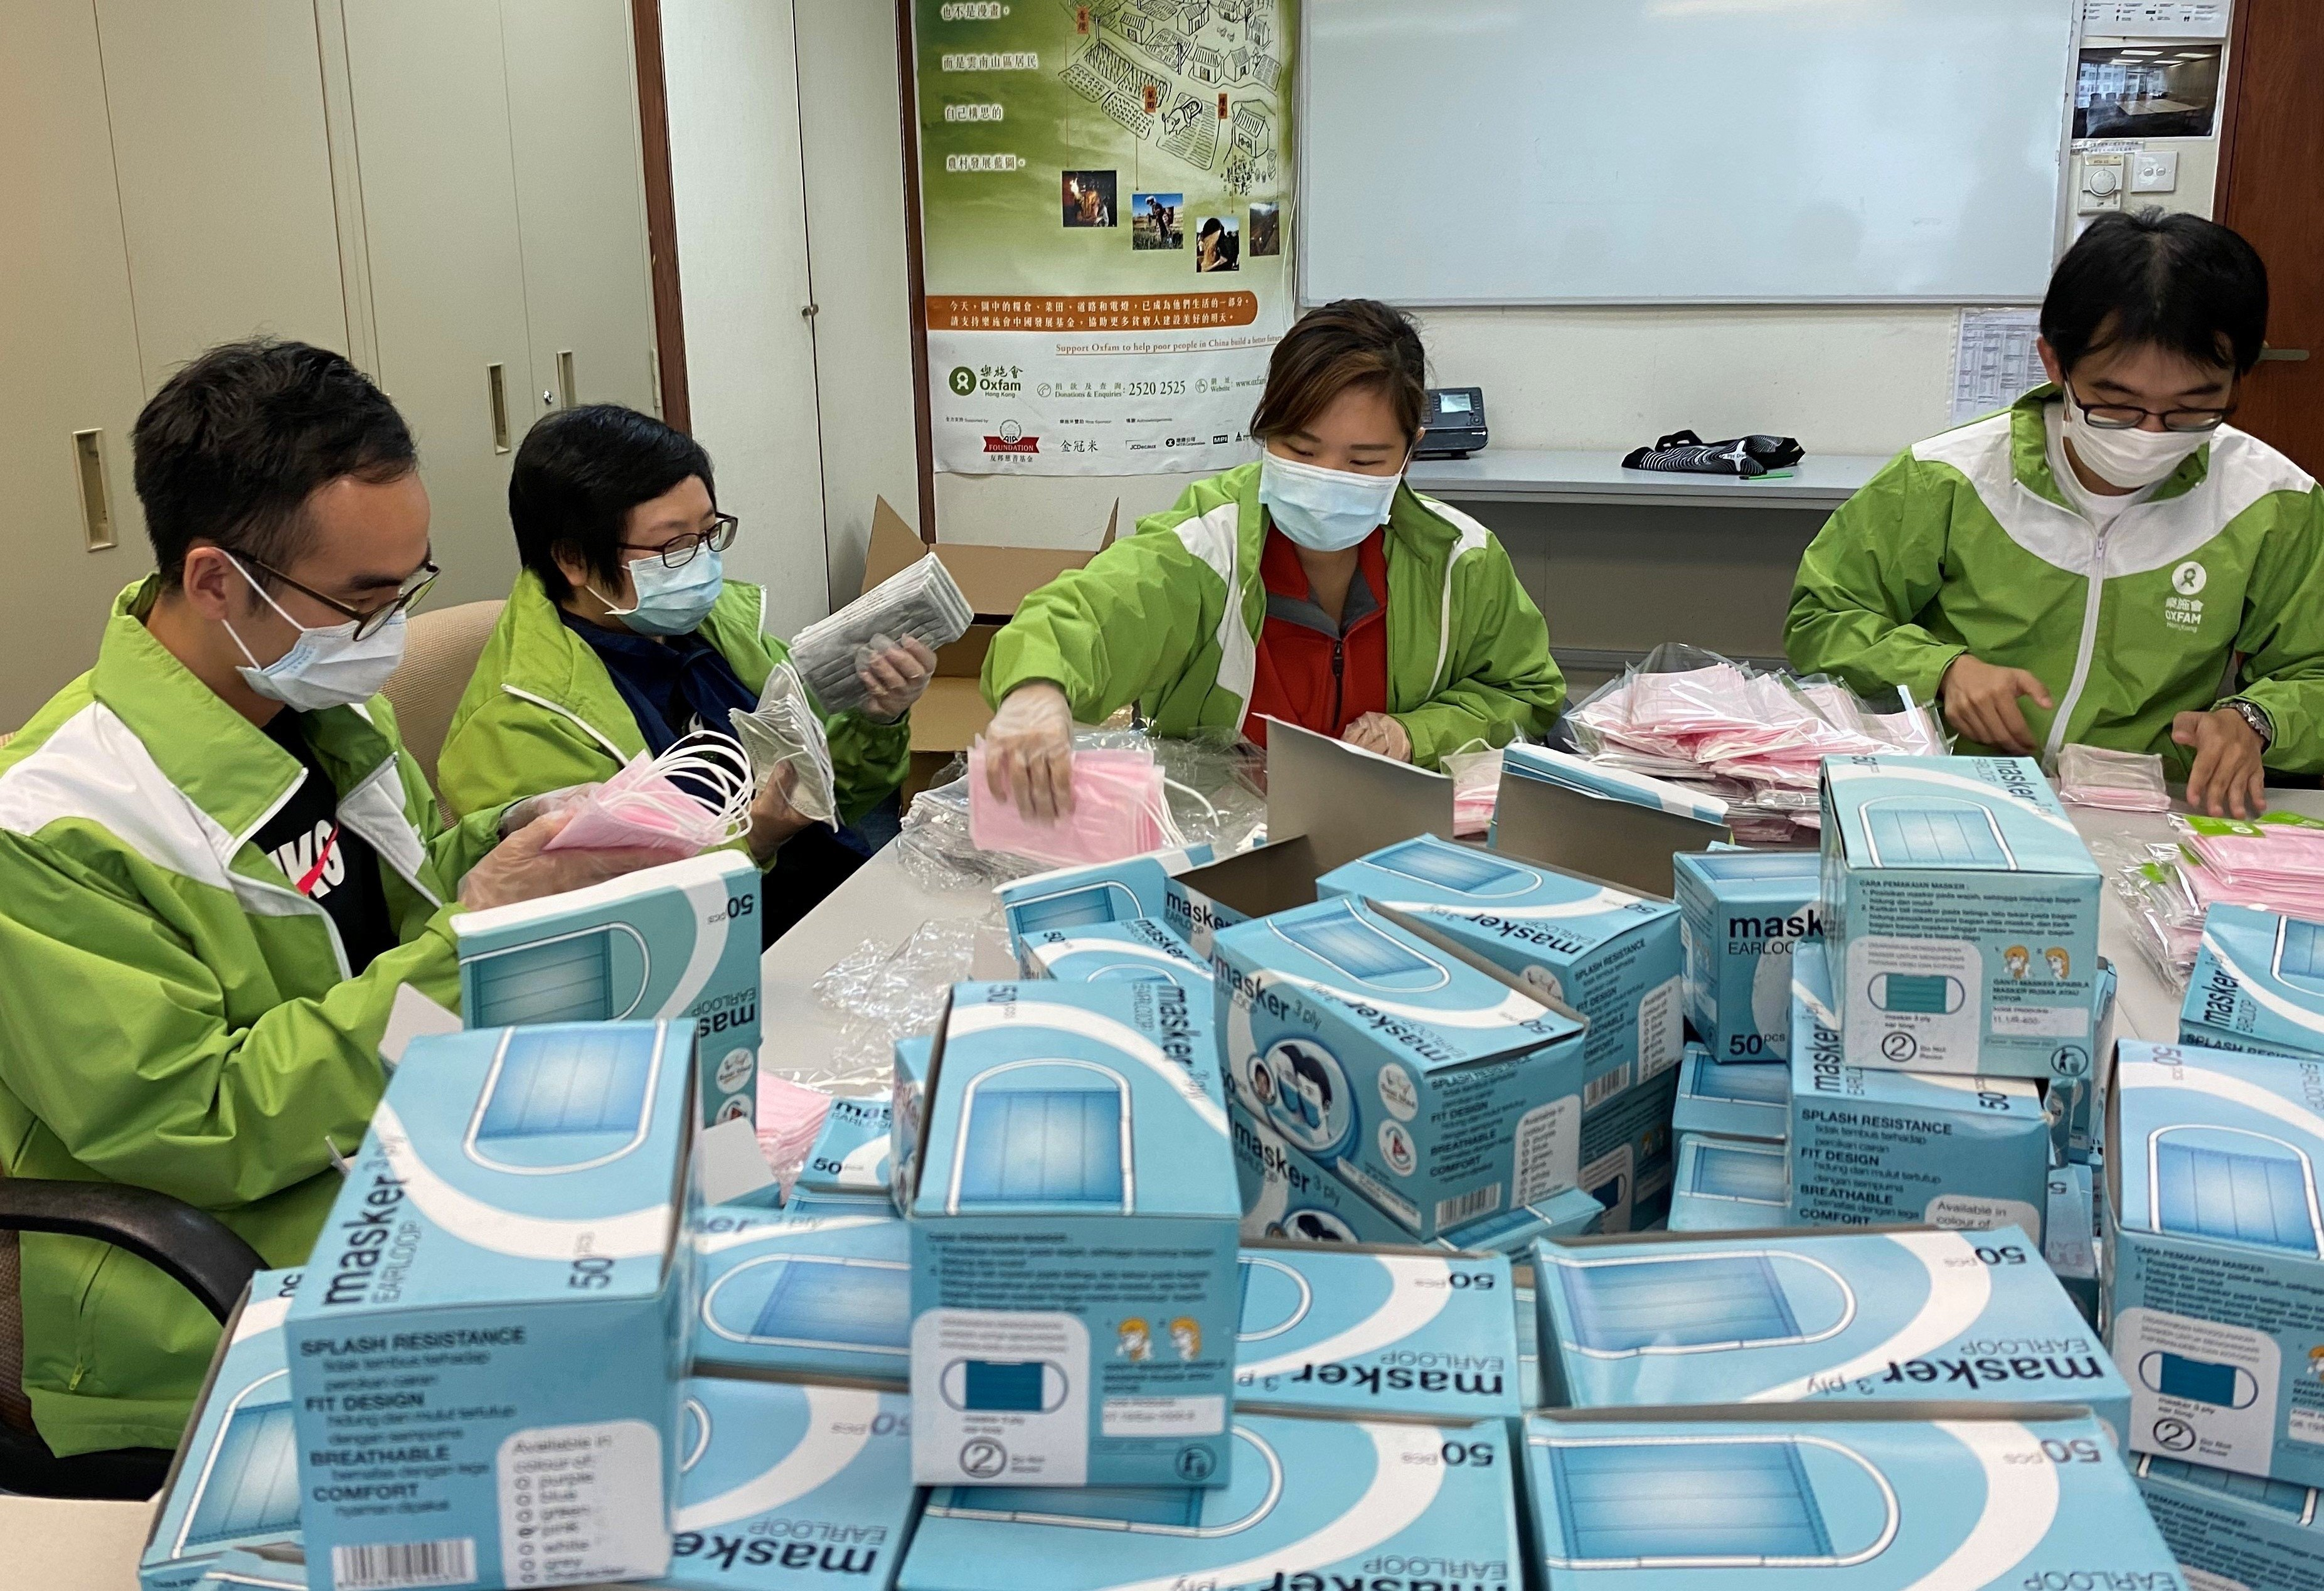 Oxfam staff packing masks